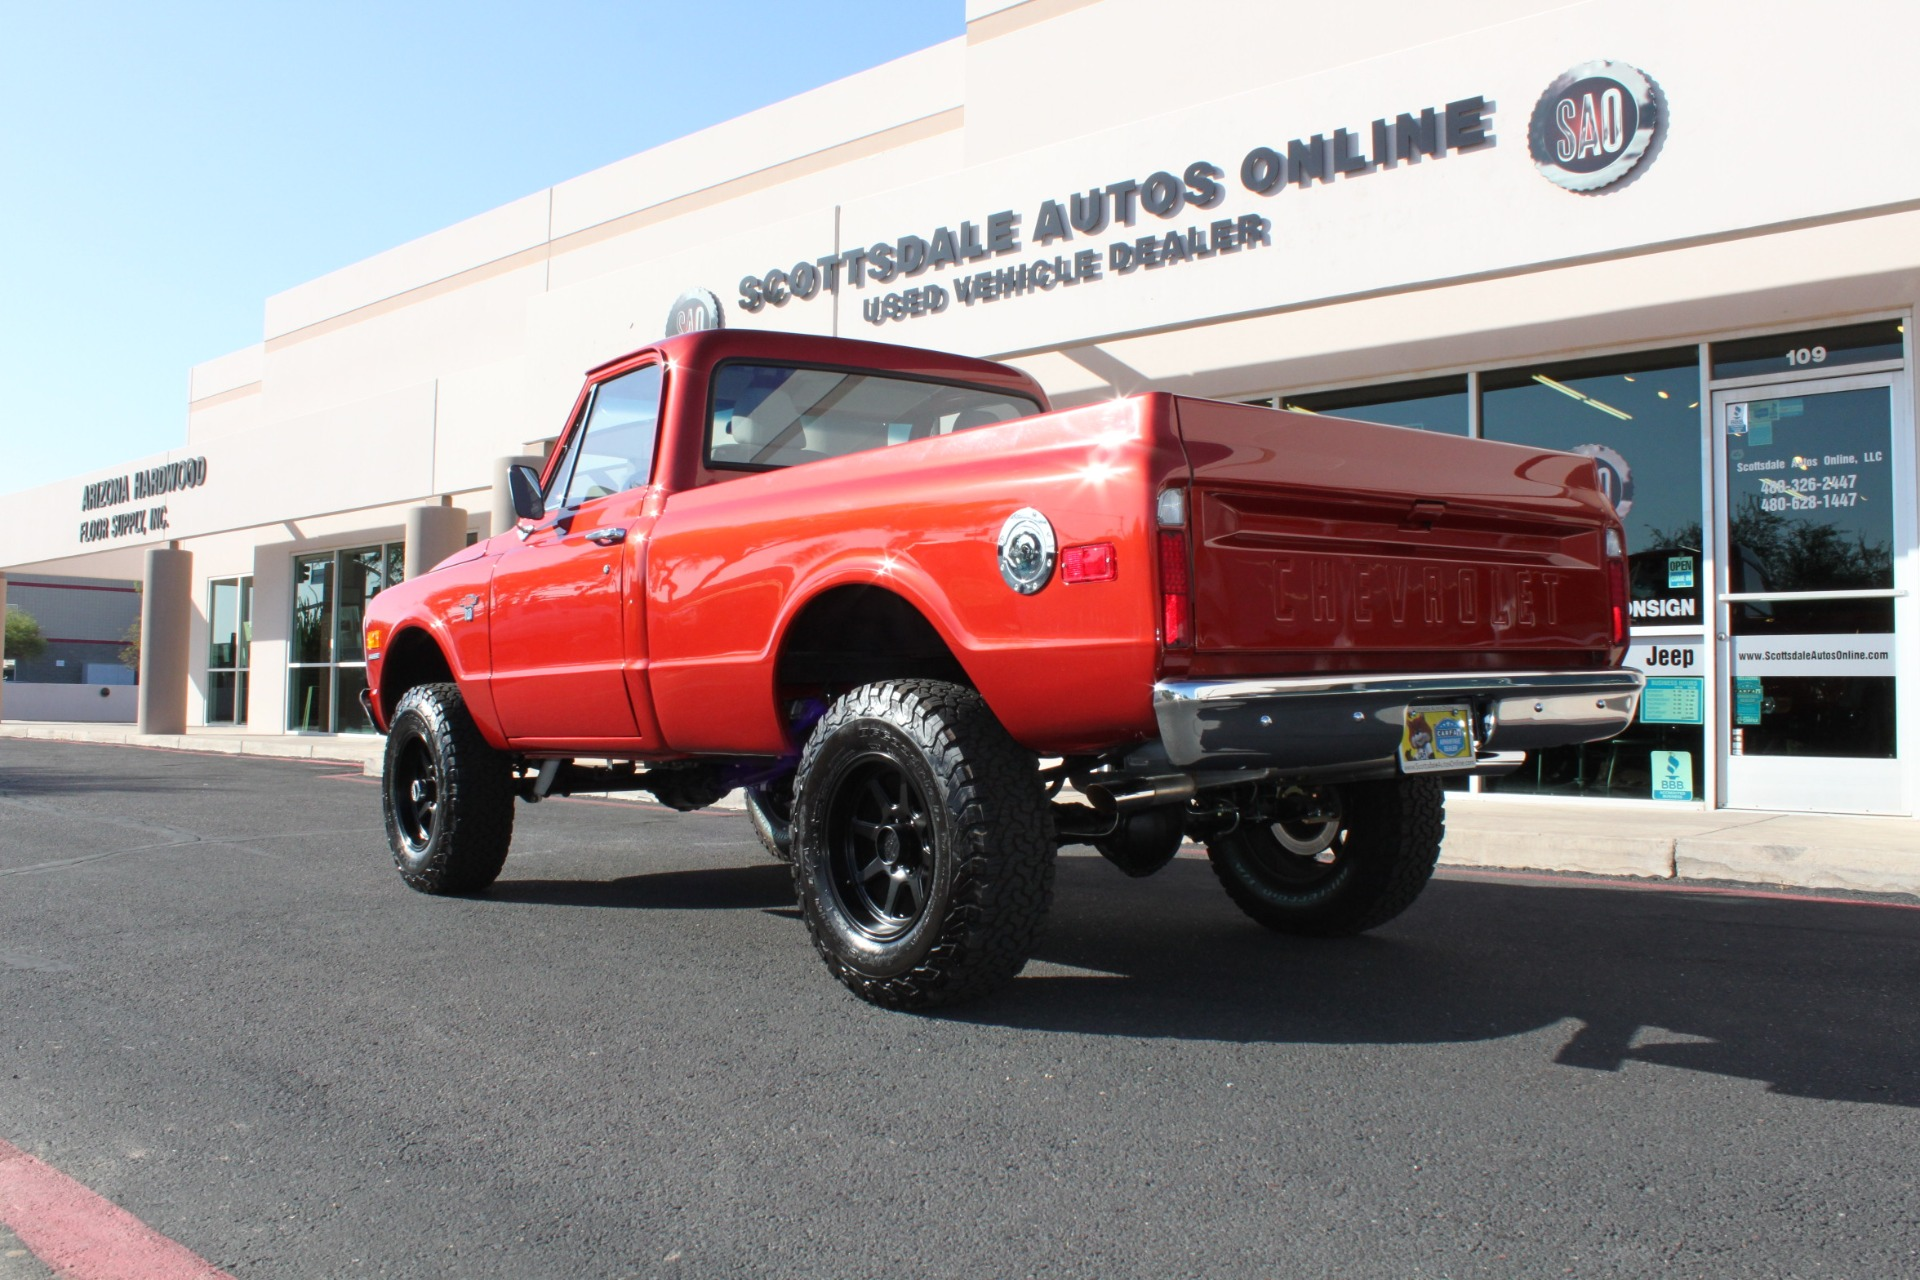 Used-1968-Chevrolet-K10-(C10)-1/2-Ton-Short-Bed-4X4-Mini